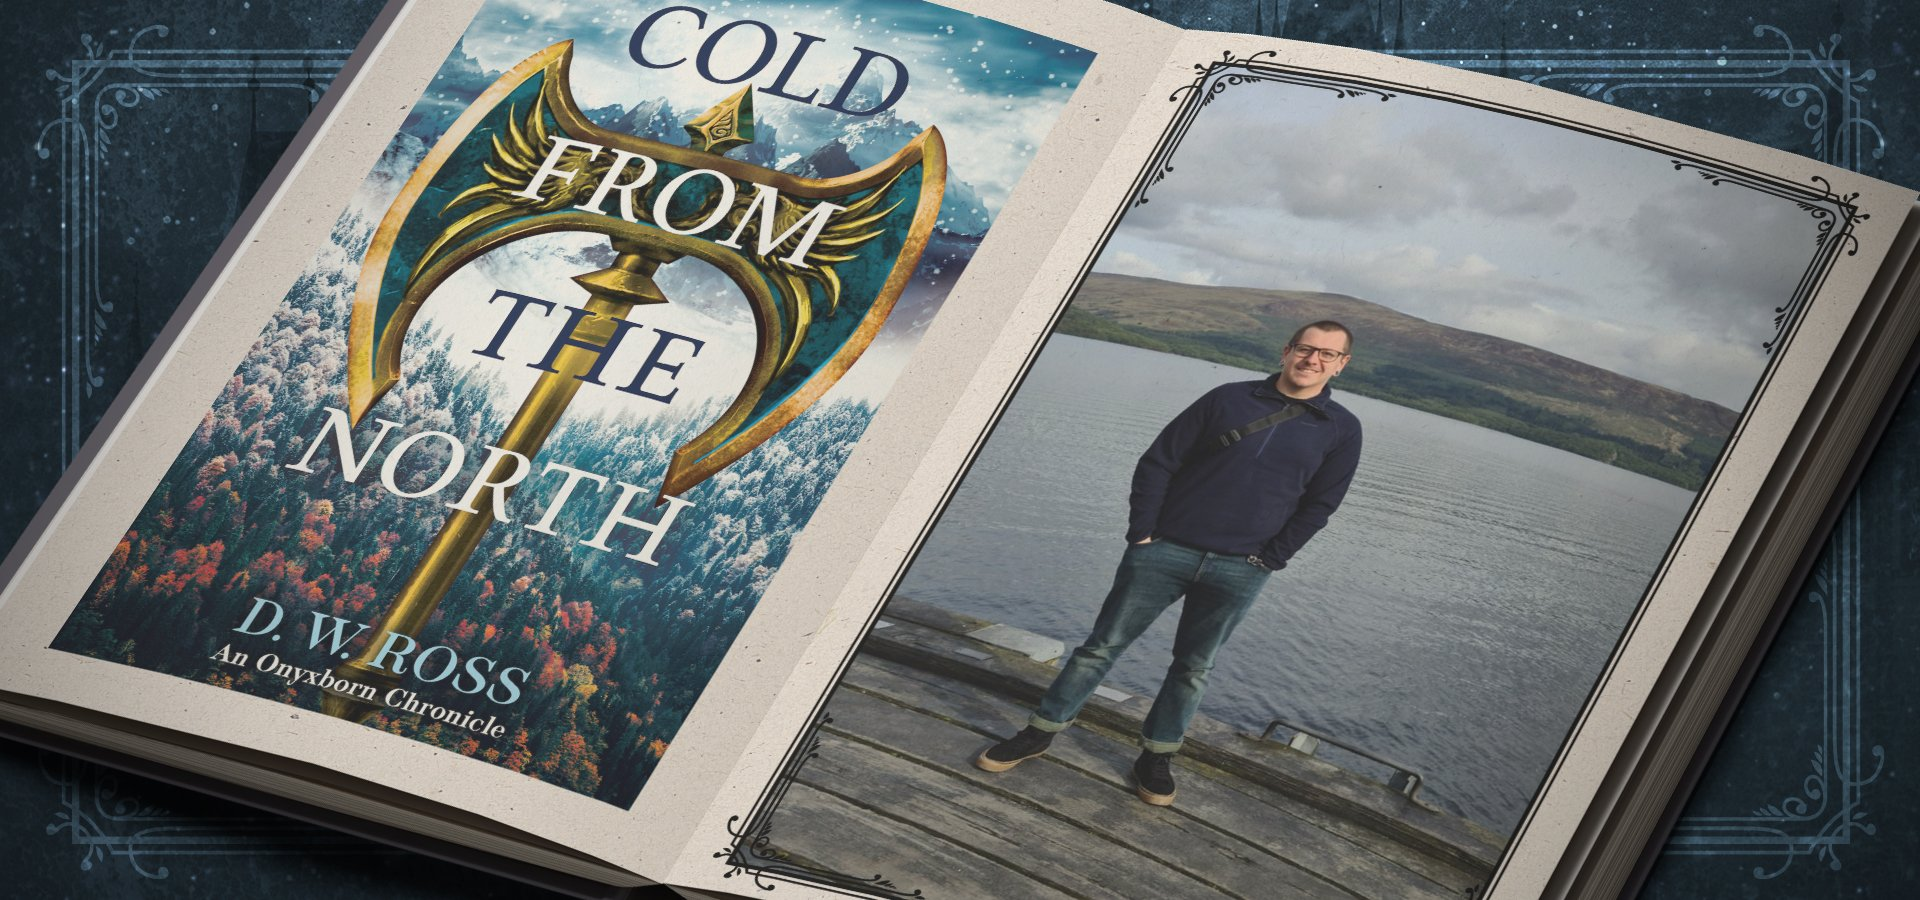 Cold From The North by D. W. Ross